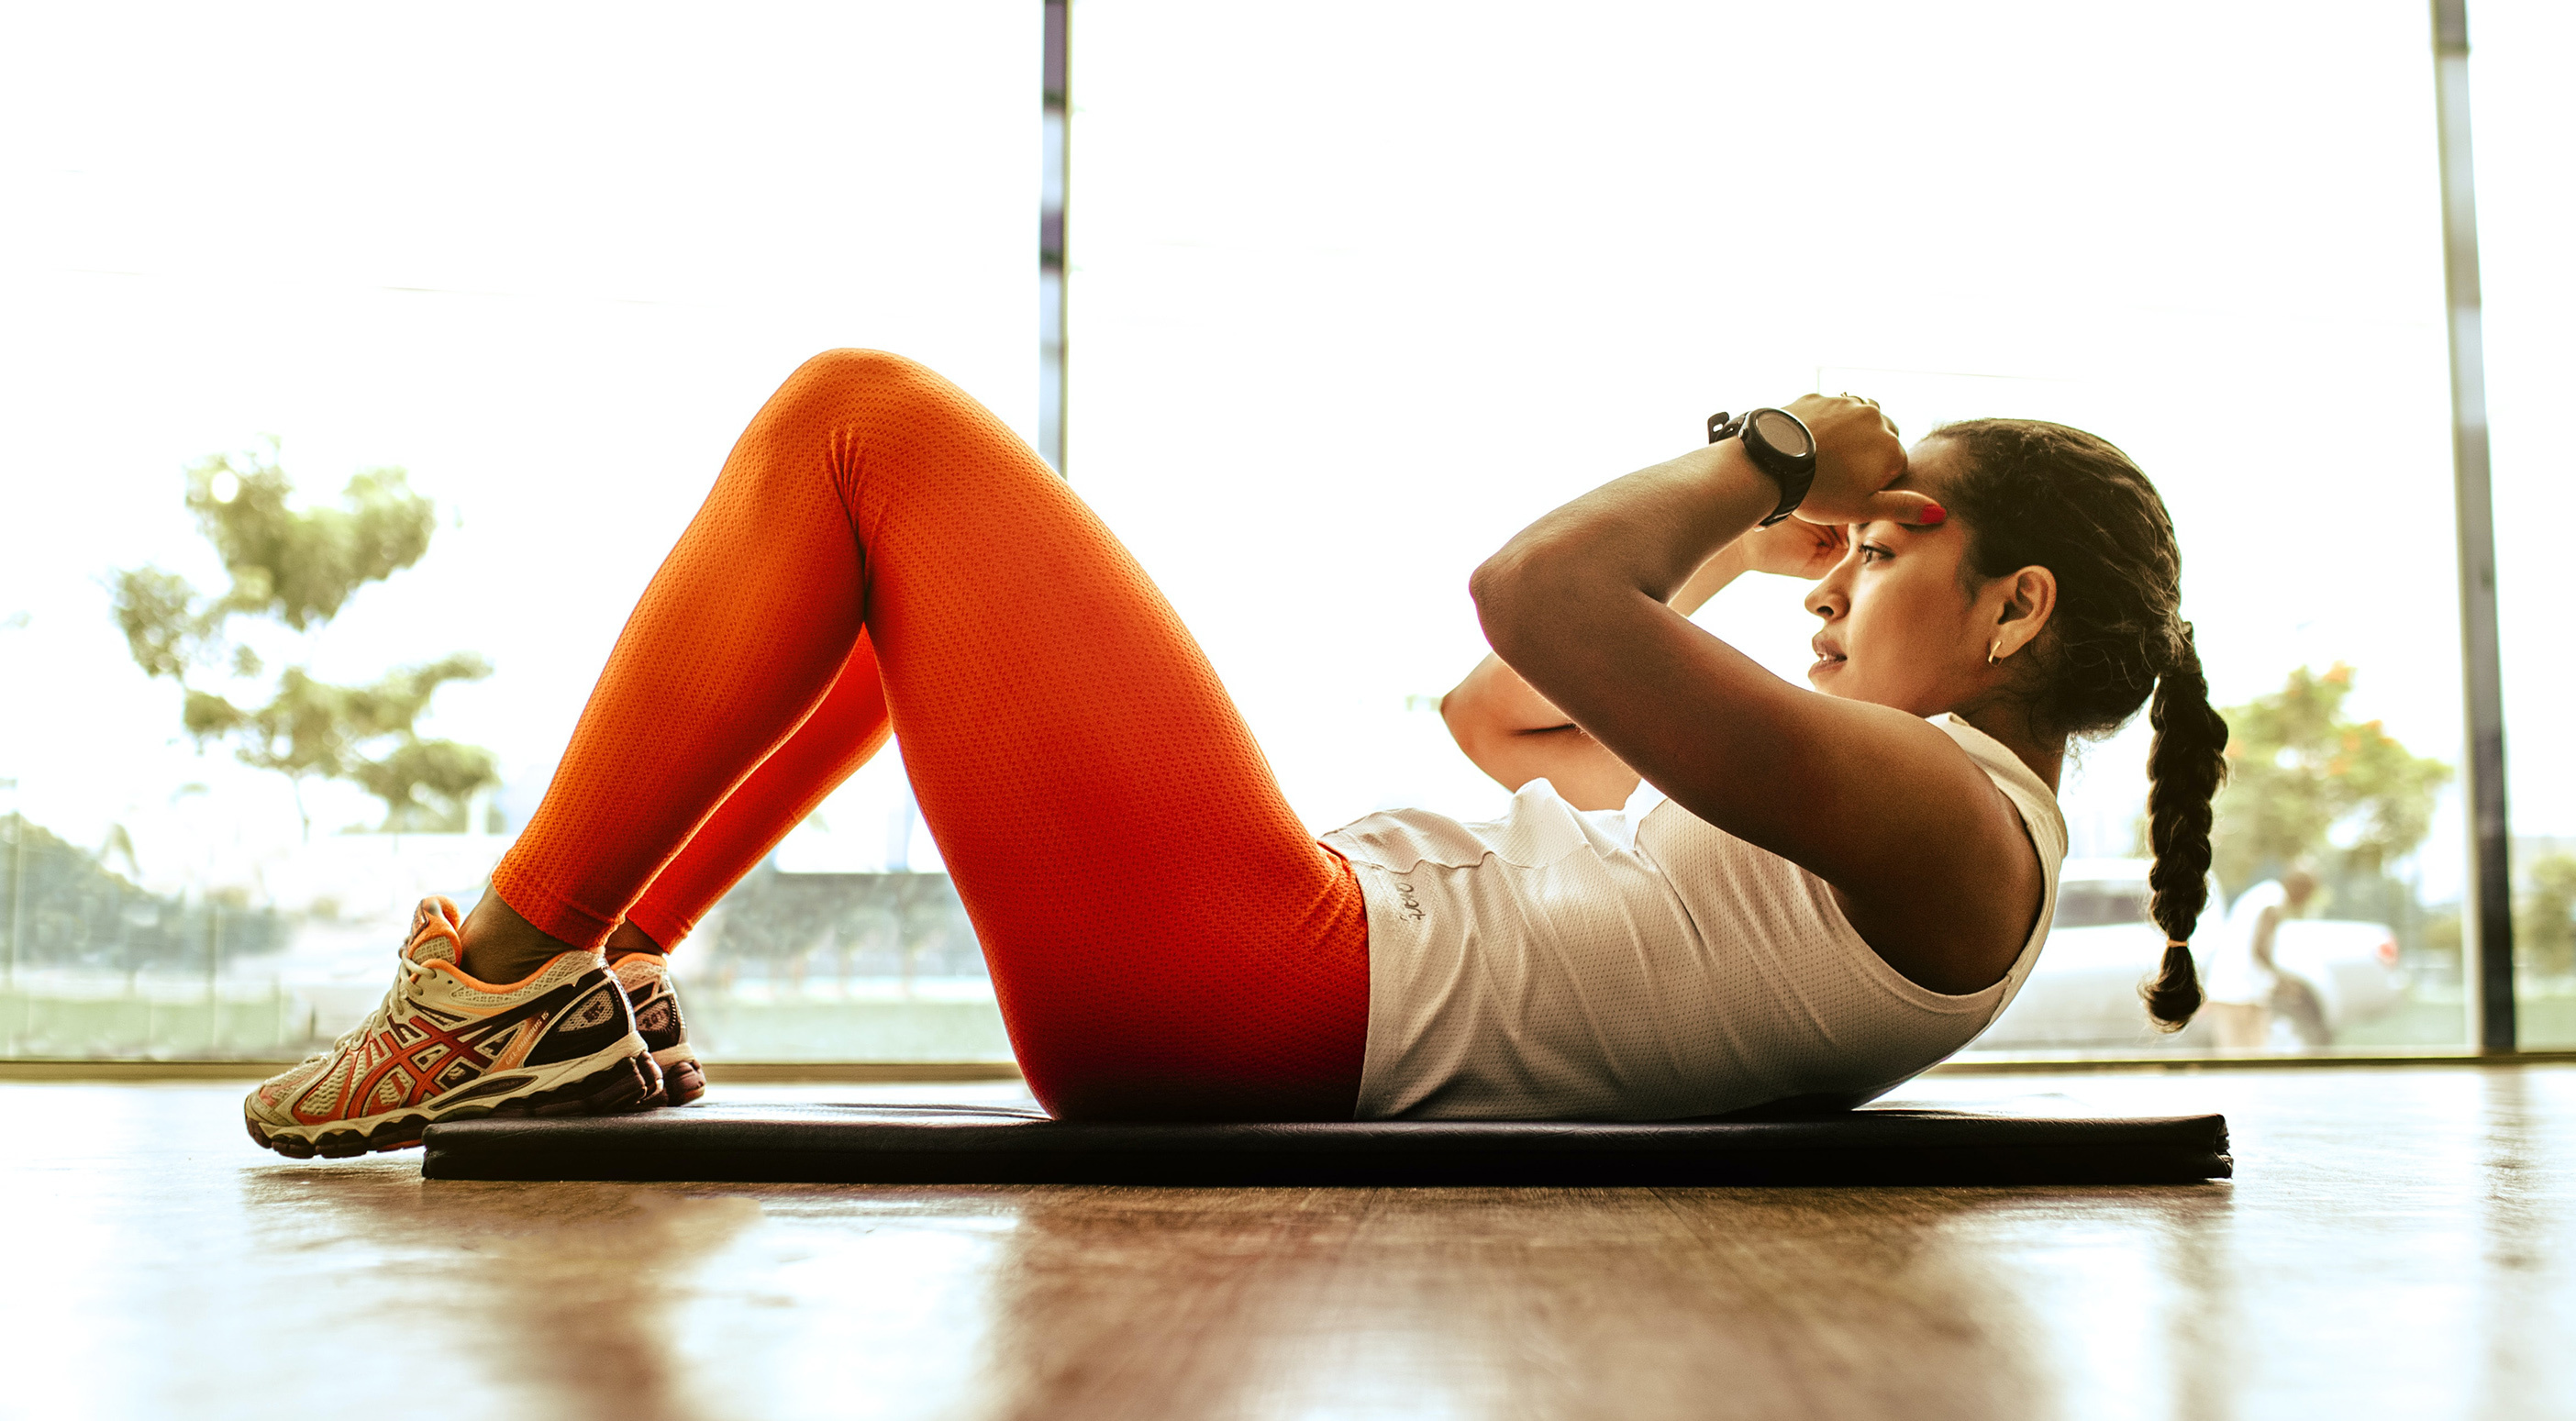 Young woman doing sit ups on a gym mat